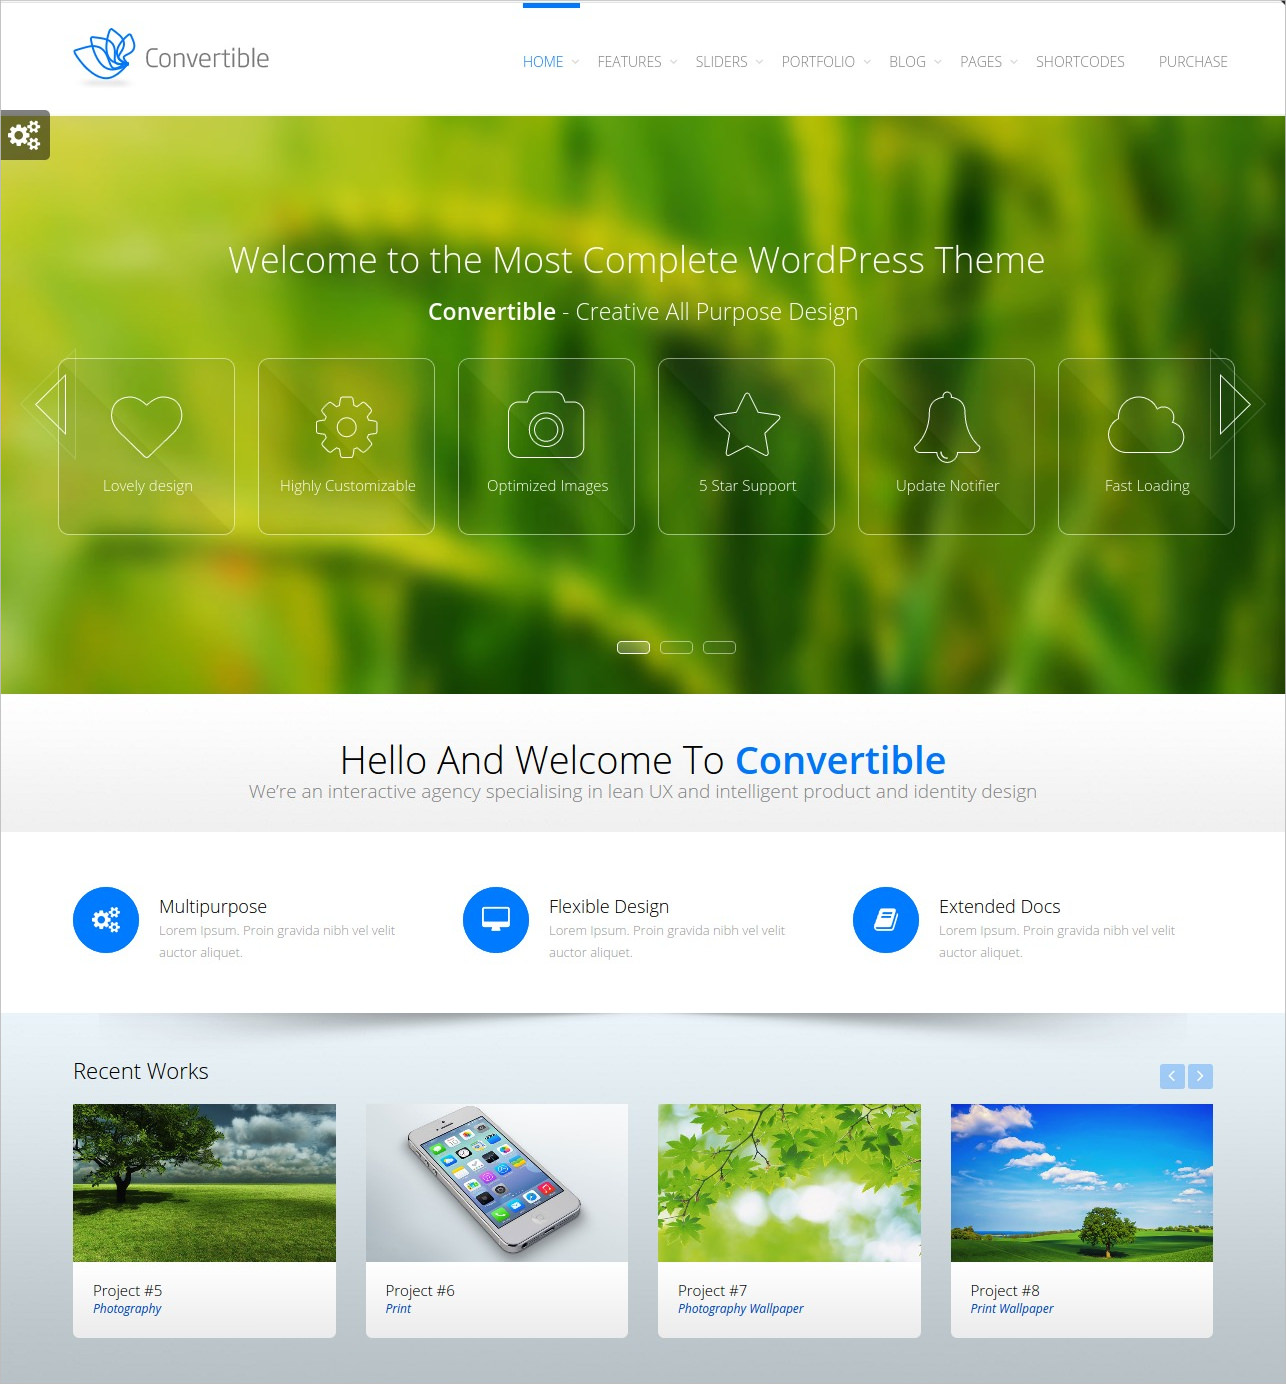 Convertible Business WordPress Theme - $49